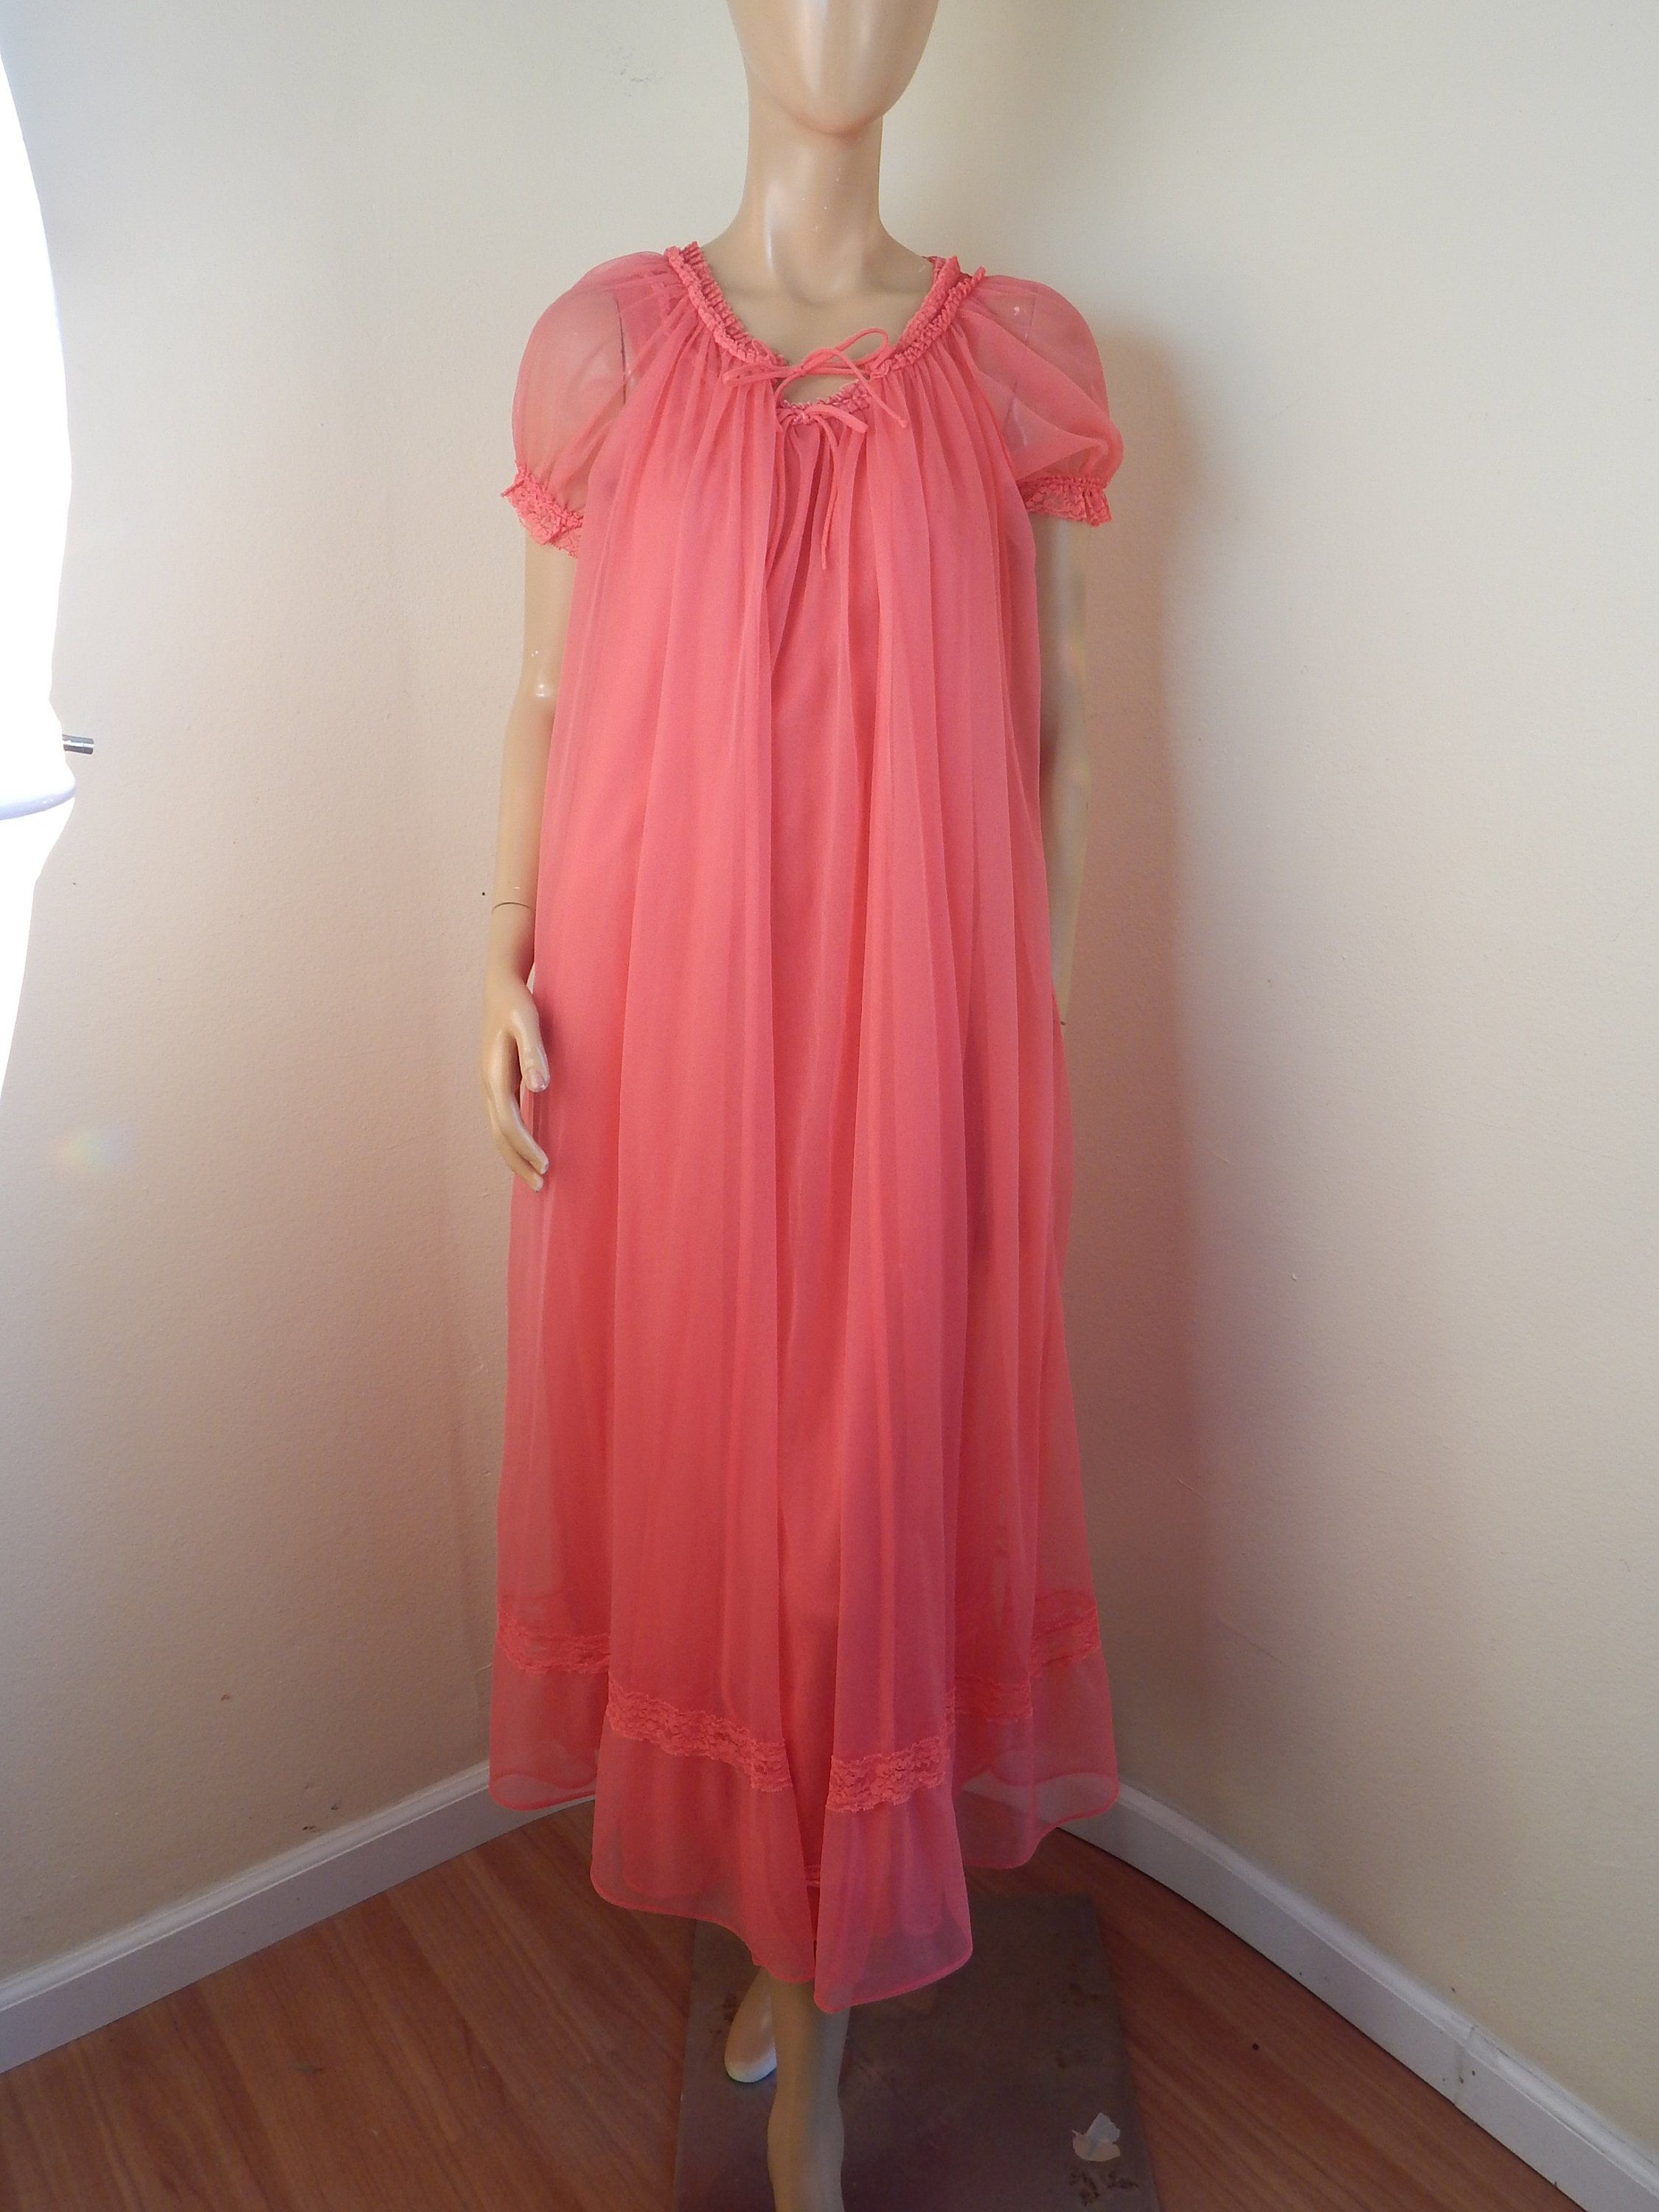 Vintage 50s White Pink Sheer CHIFFON Beaded Nightgown